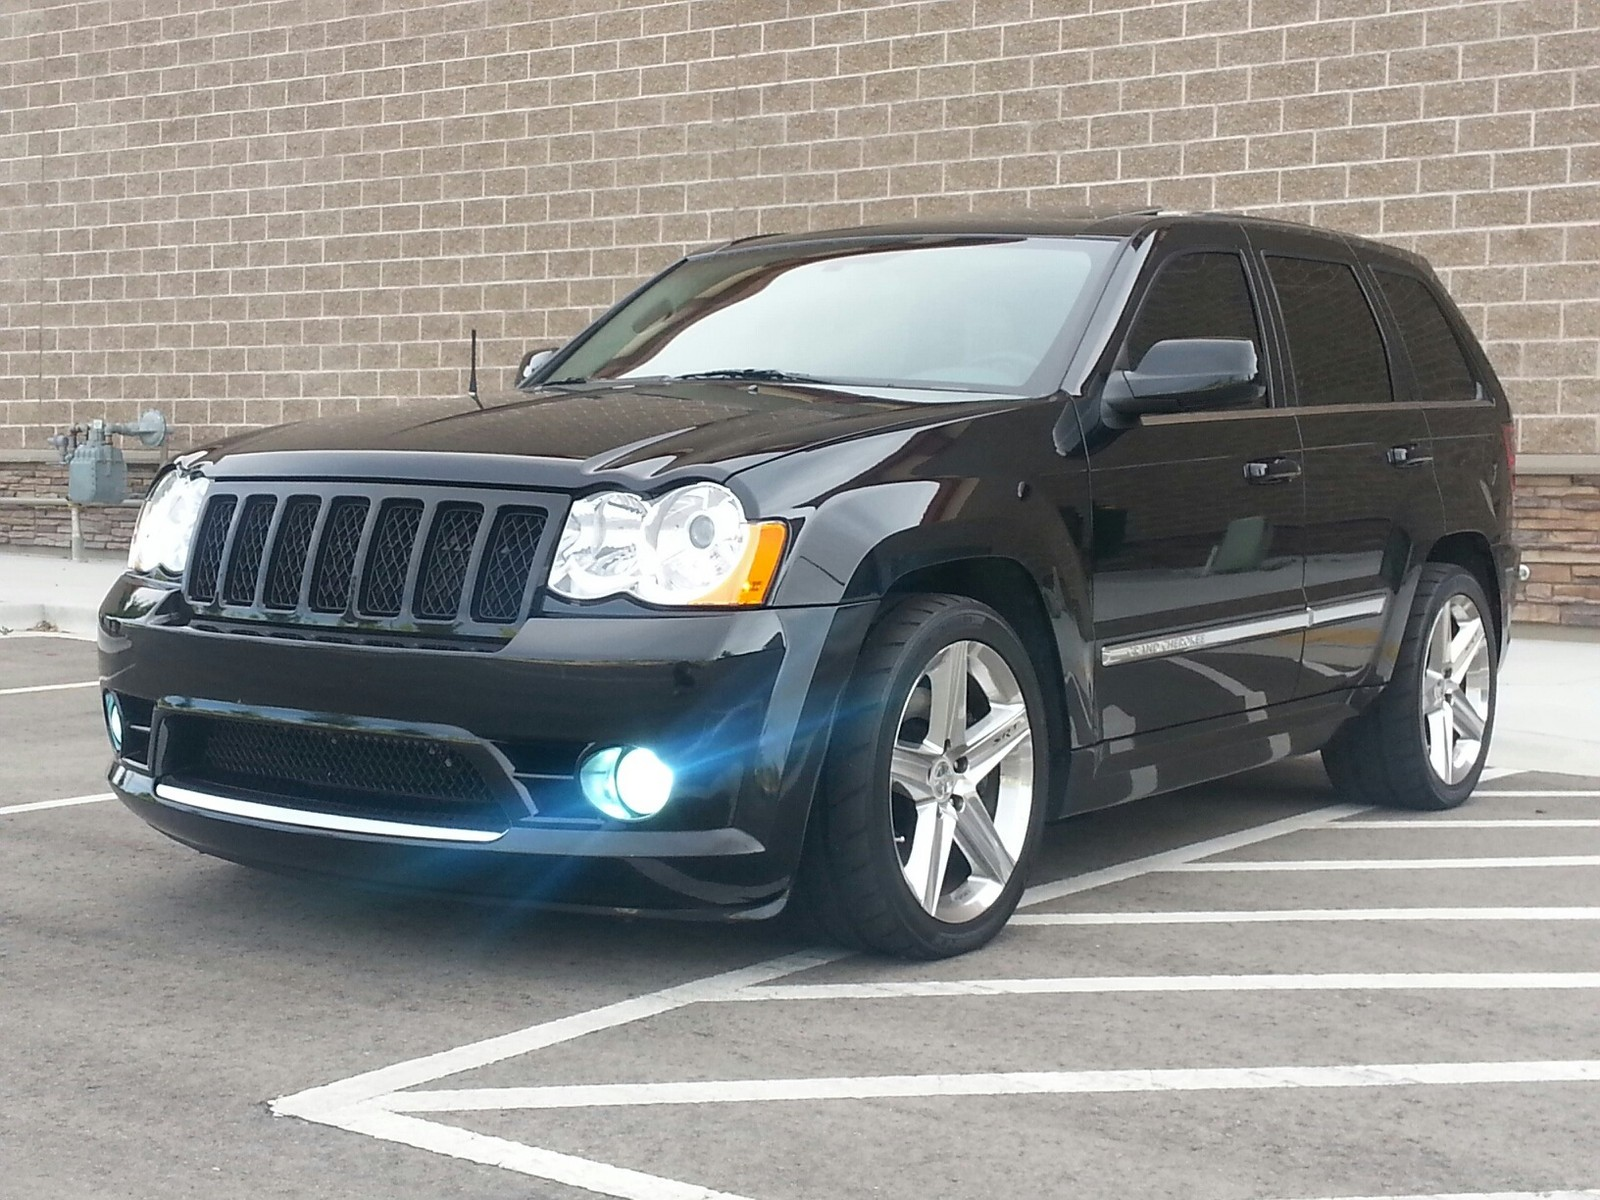 2008 Jeep Cherokee Srt8 Magnuson Supercharged 1 4 Mile Drag Racing Timeslip Specs 0 60 Dragtimes Com